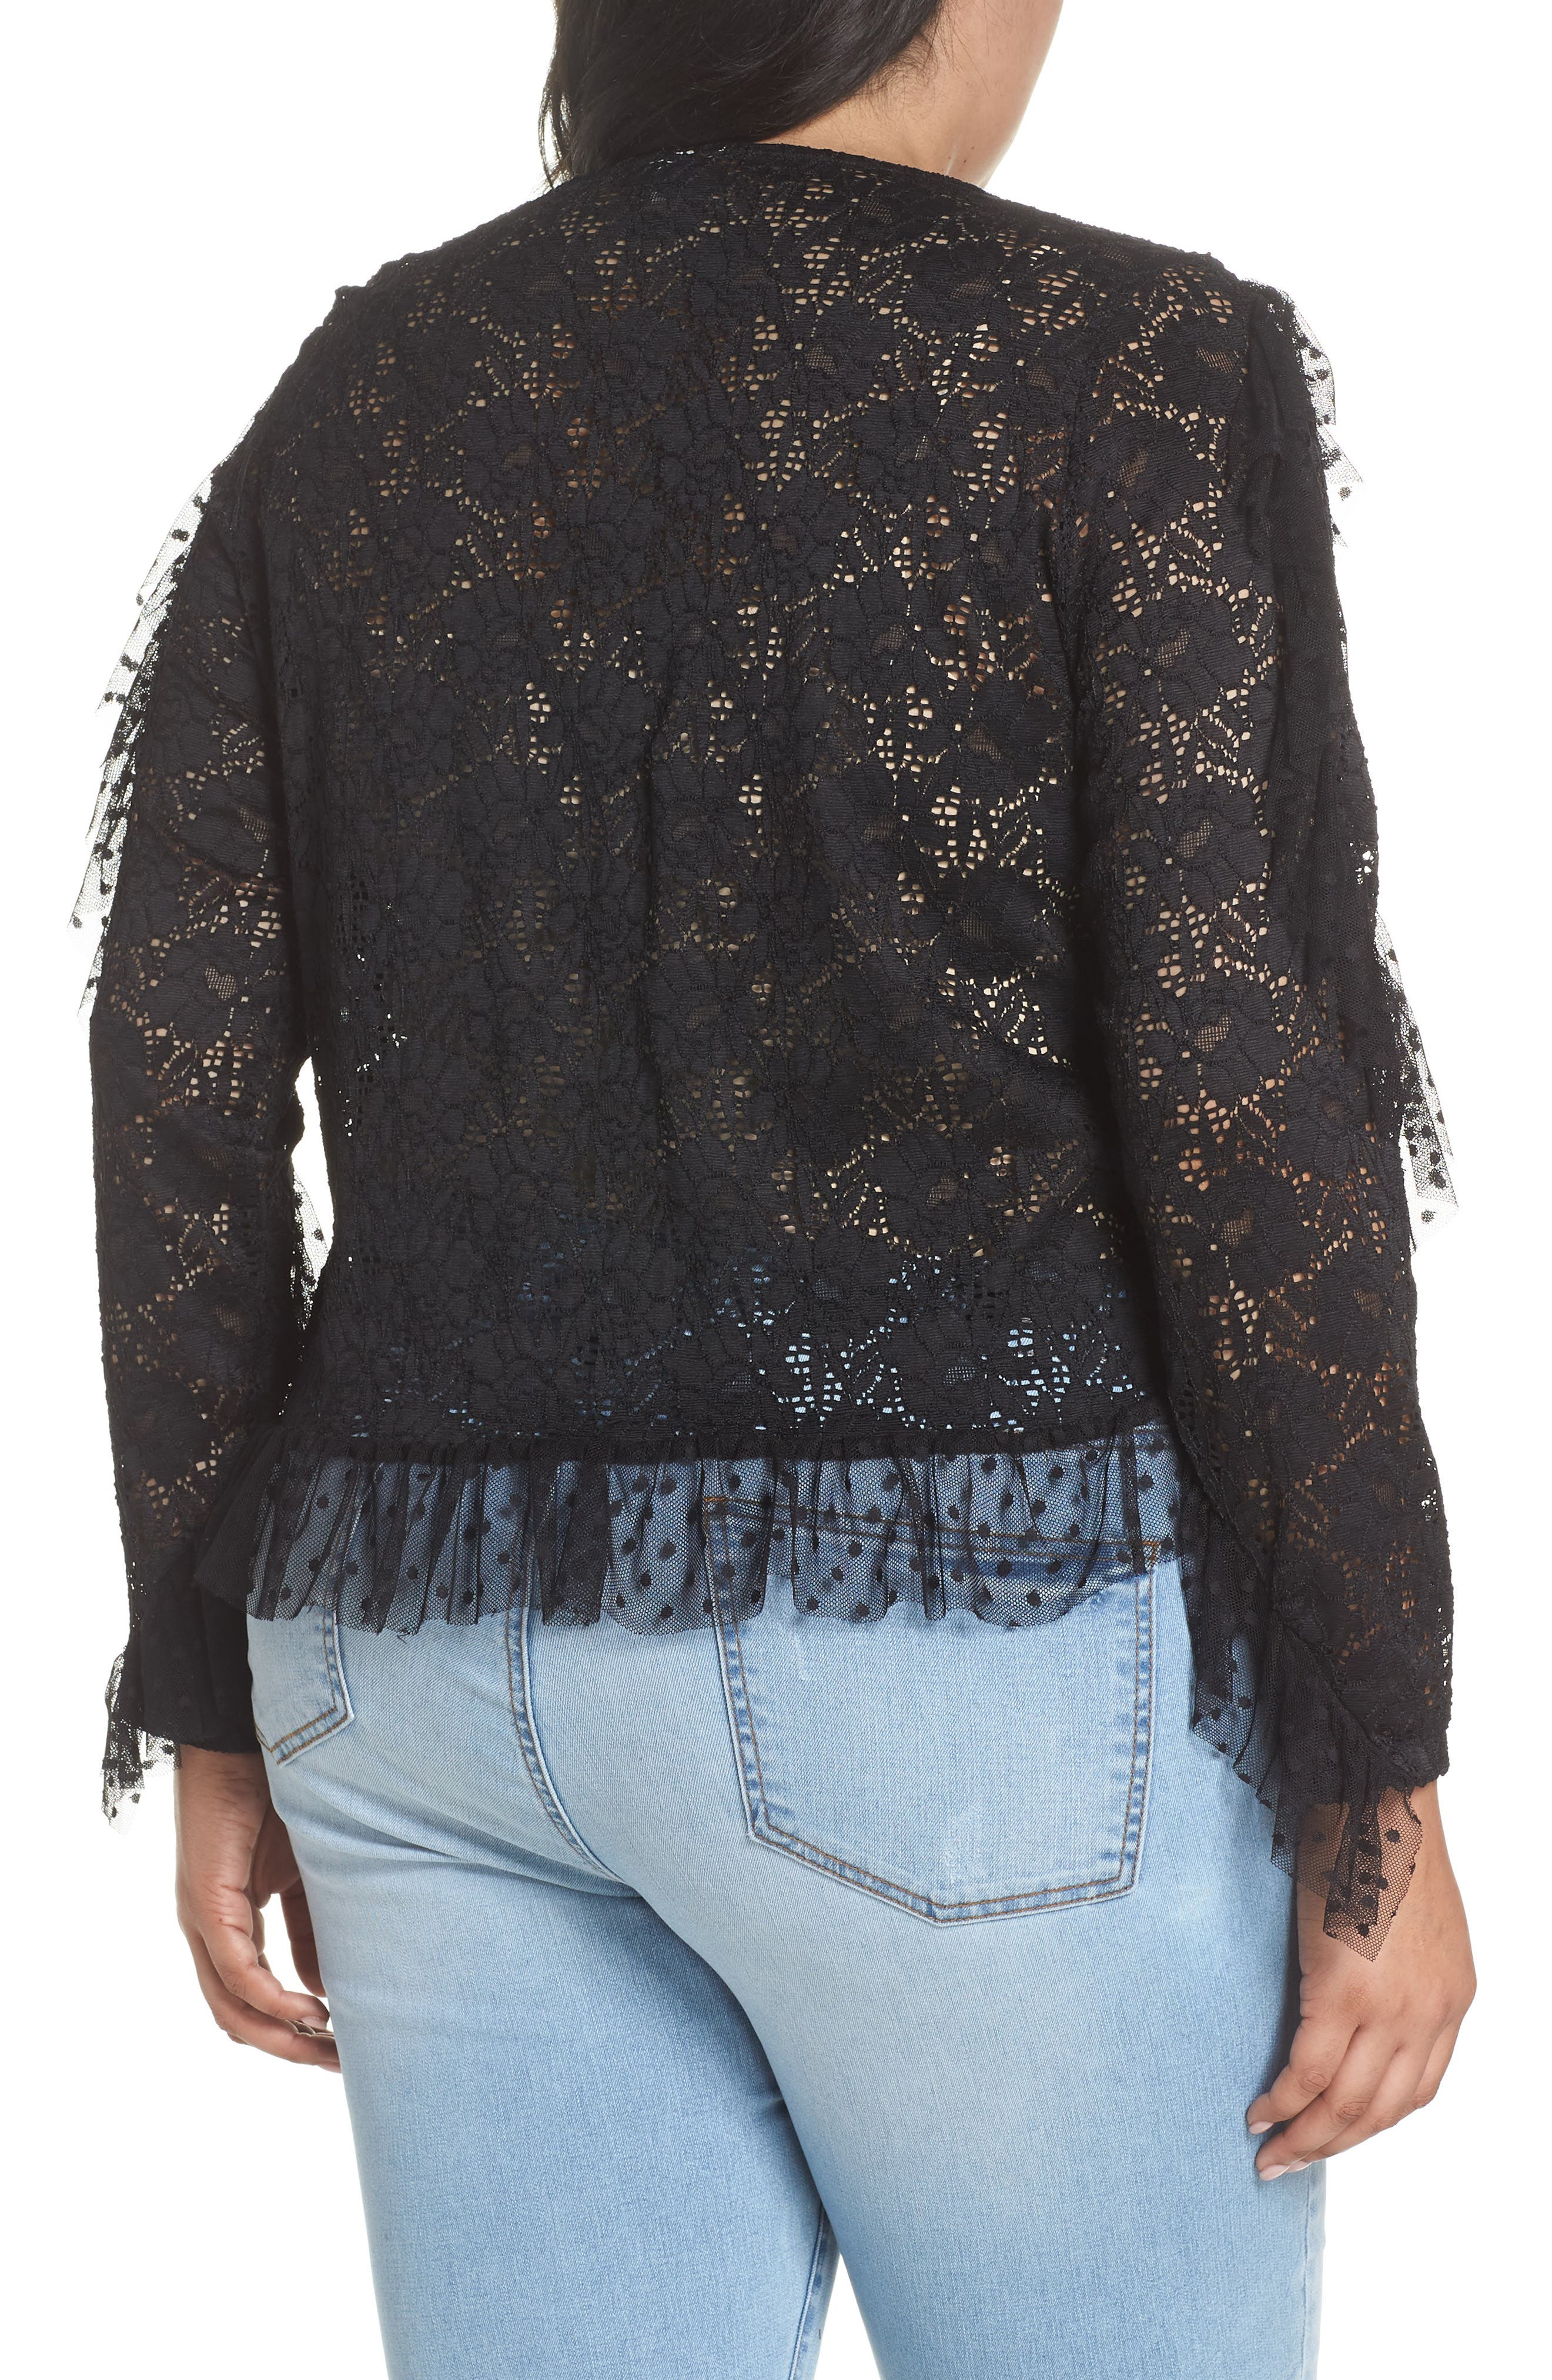 LOST INK,                             Ruffle Trim Lace Top,                             Alternate thumbnail 2, color,                             001